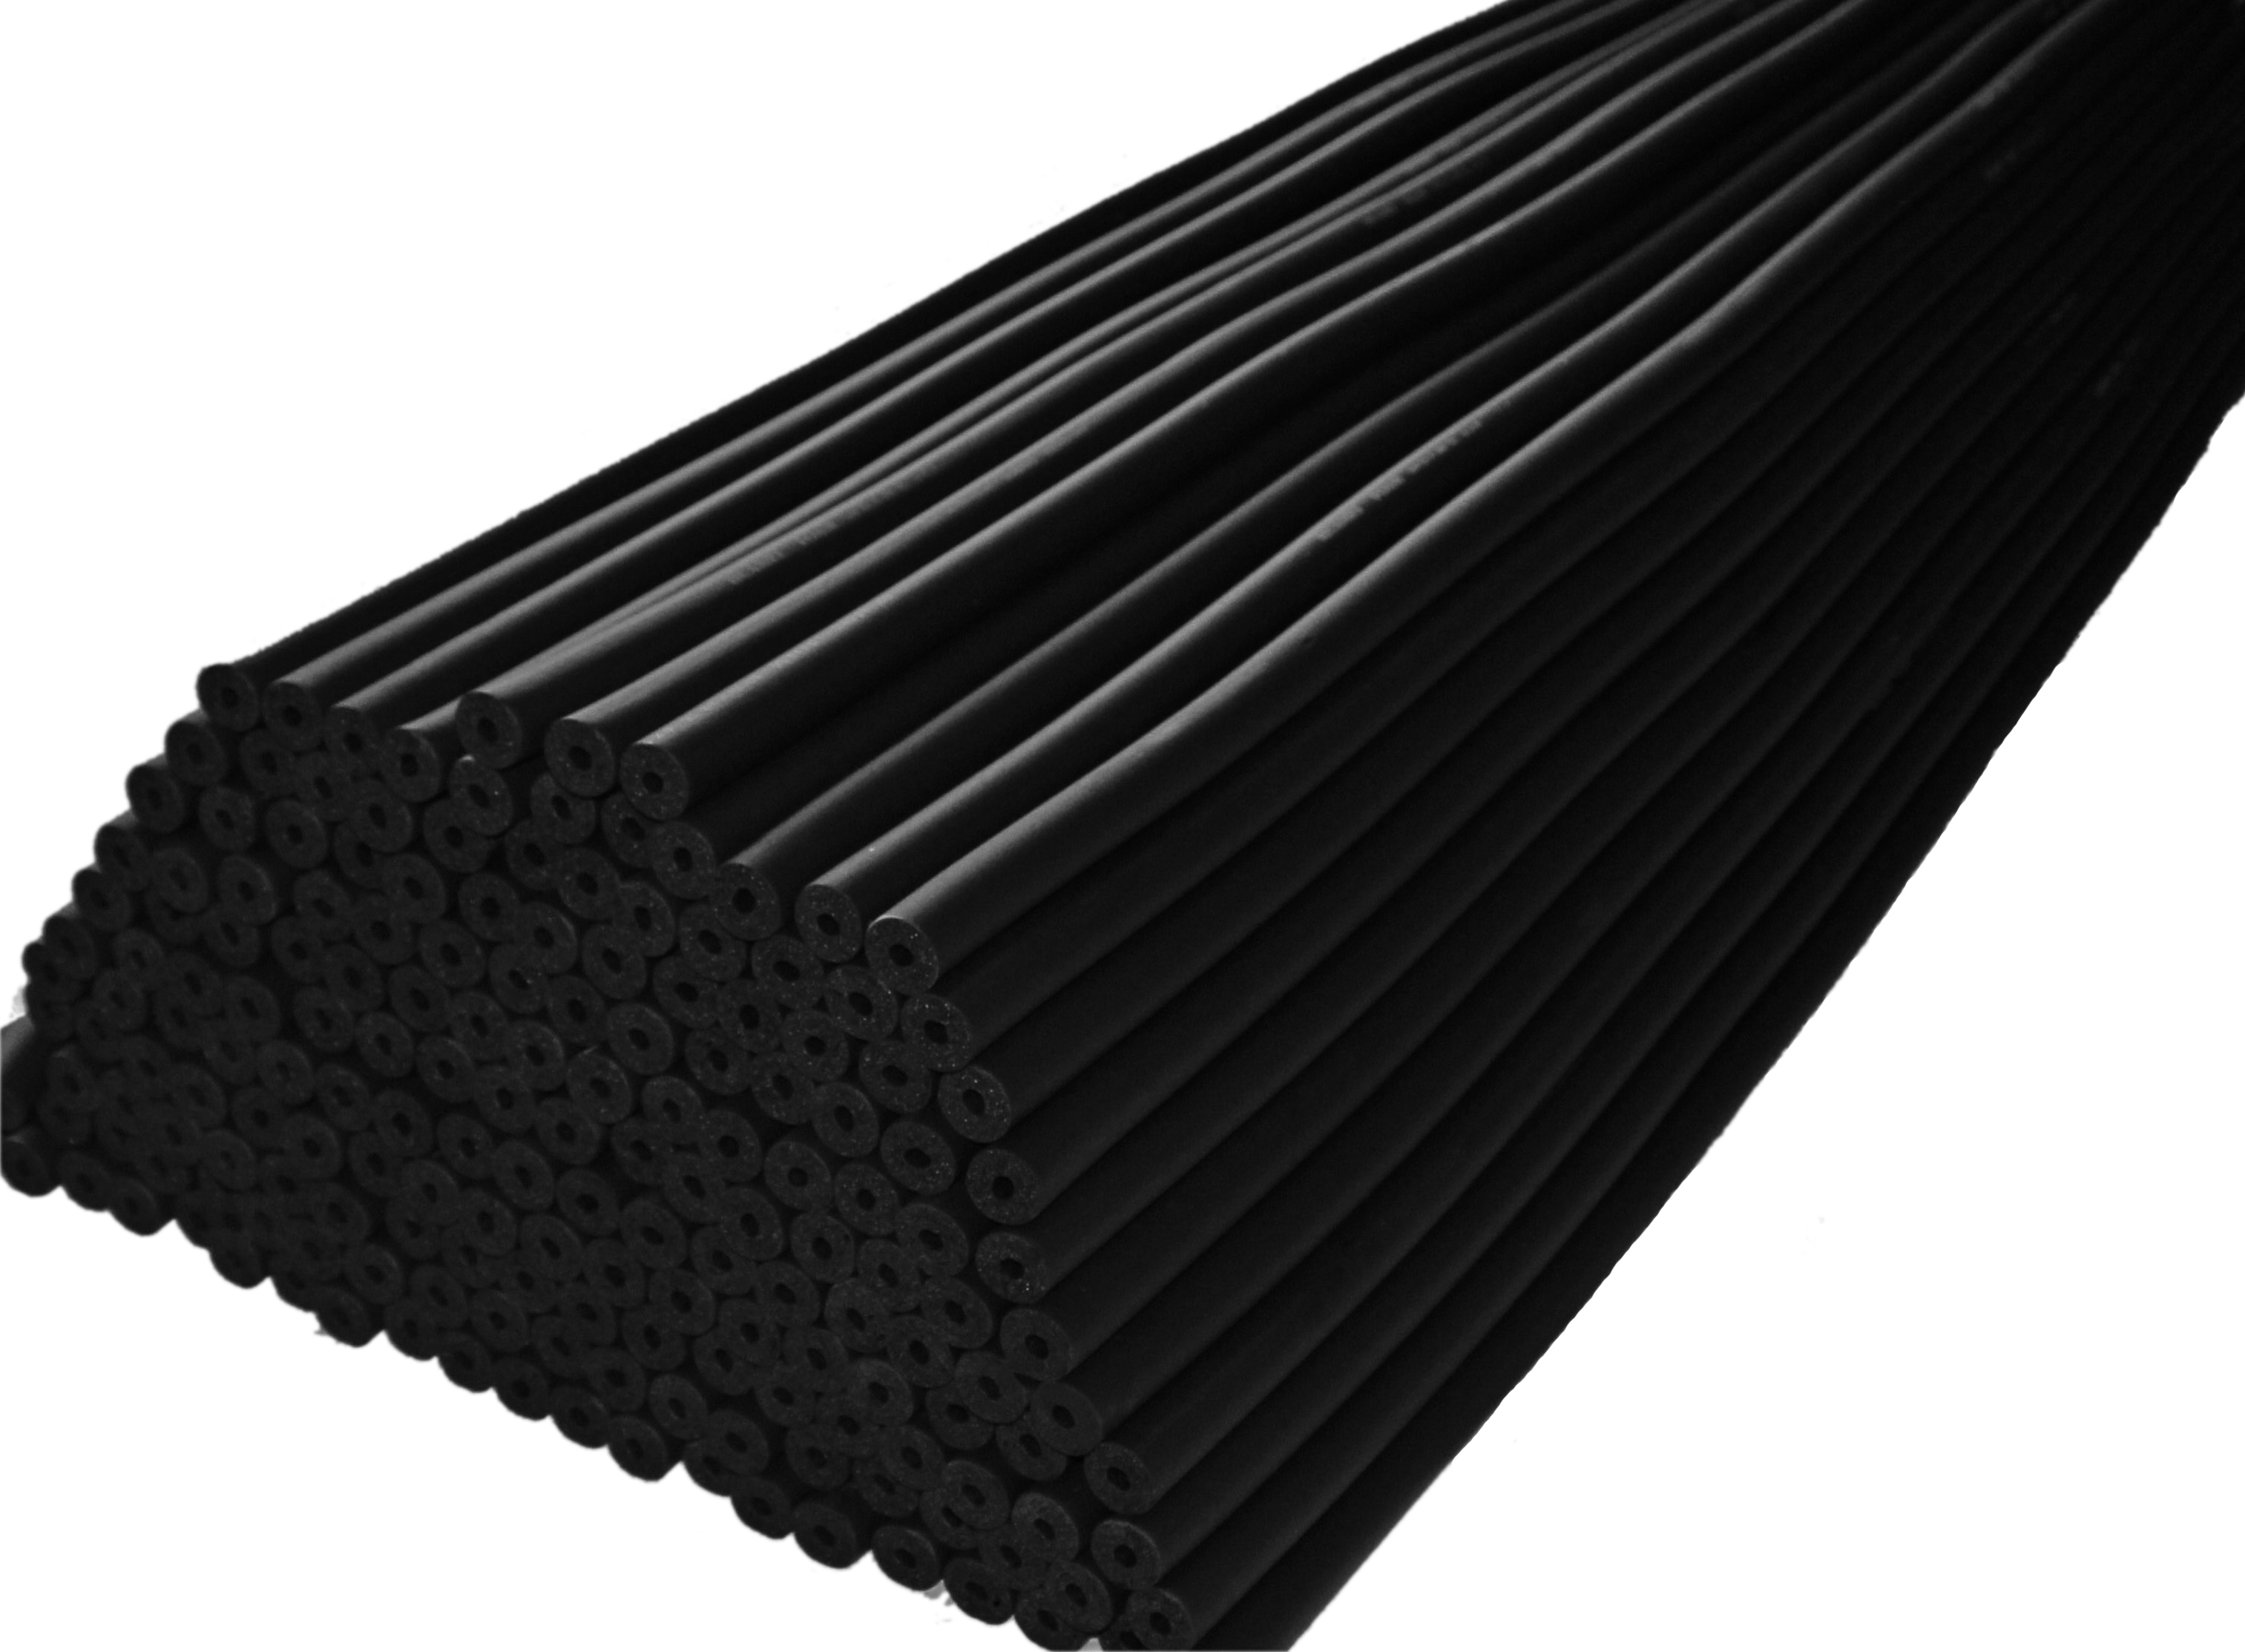 Flexible Elastomeric Thermal Insulation